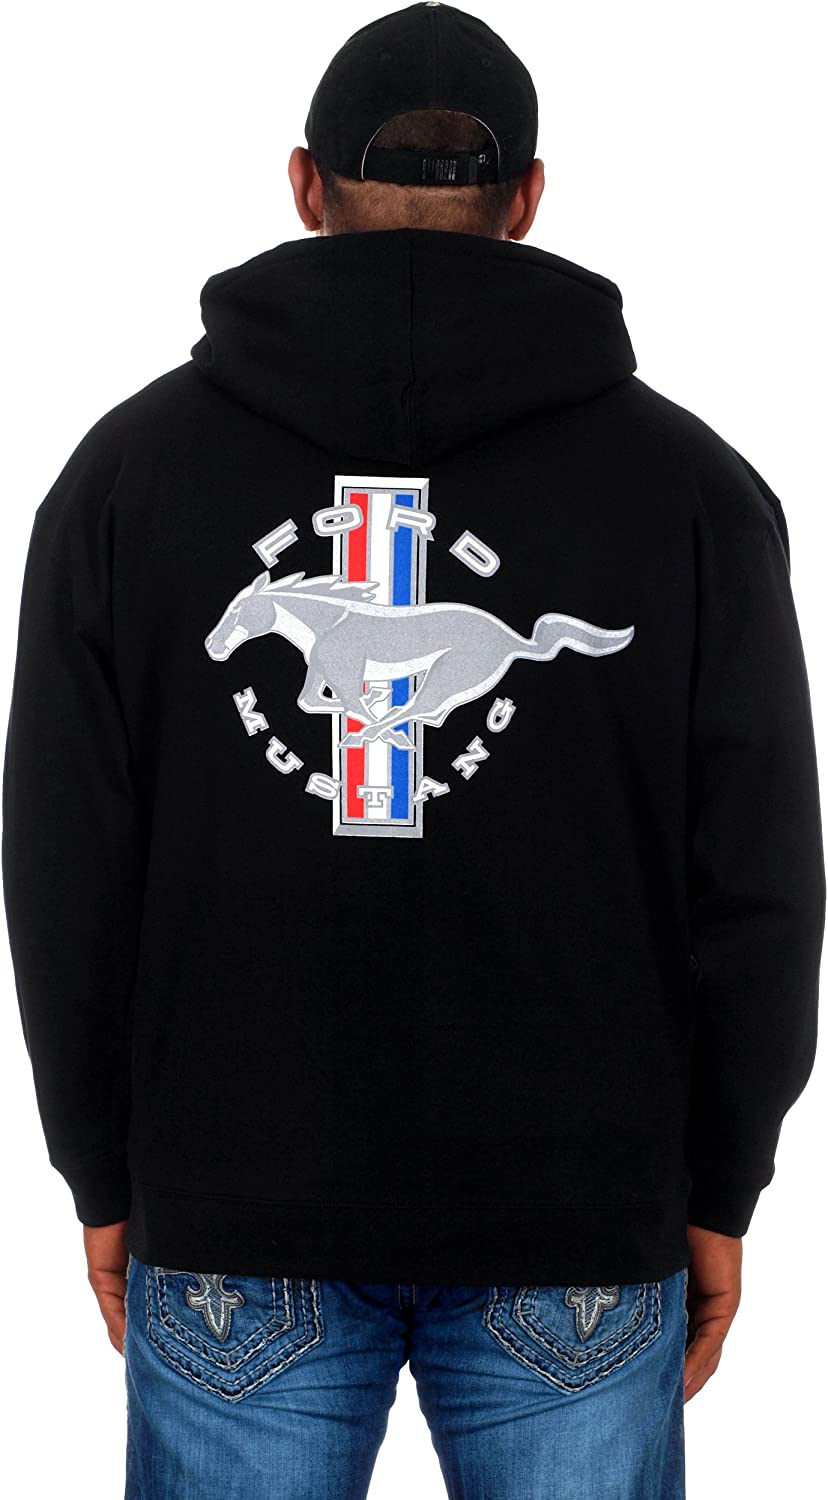 Jh Design Mens Ford Mustang Hoodies in 5 Styles Pullovers /& Full Zip Up